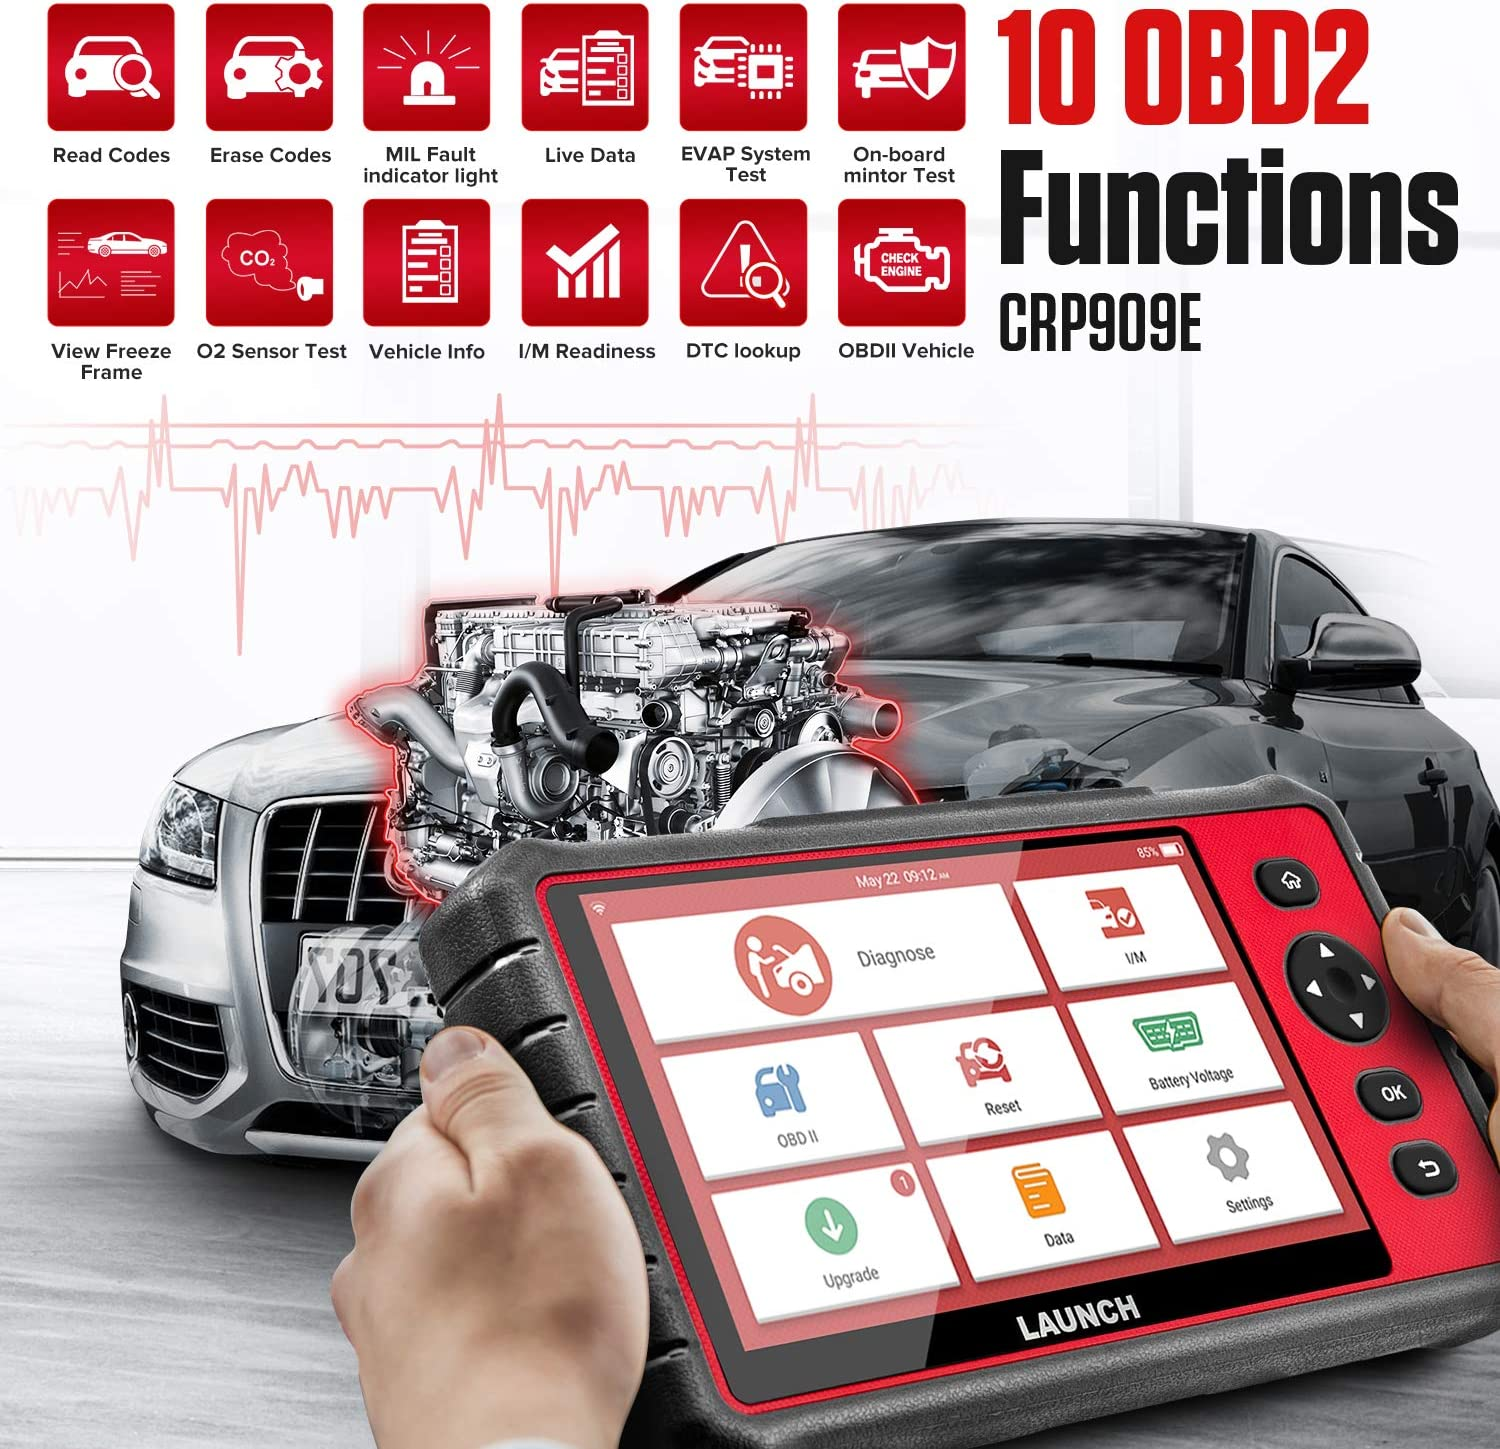 """LAUNCH CRP909E OBD2 Scanner 7/""""inch touch screen Full System Car Diagnostic Scan Tool,15 Reset Functions Automotive Code Reader,Key Programming,TPMS,SAS,DPF,BMS,IMMO,ABS Bleed,Auto VIN WiFi Free Update"""